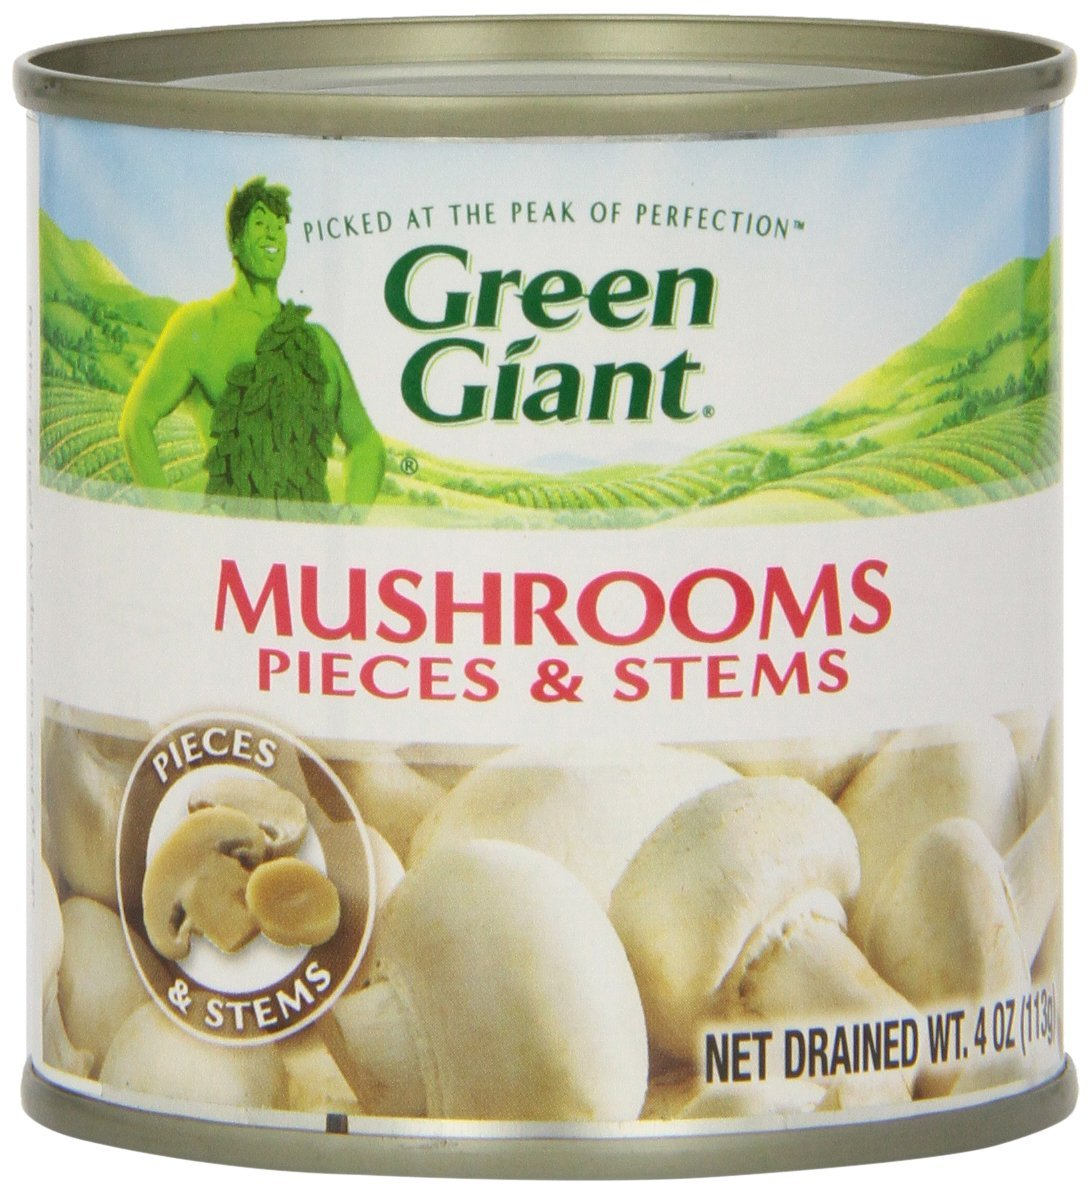 gre>Mushroom, Pieces And Stems - Green Giant Canned -14oz